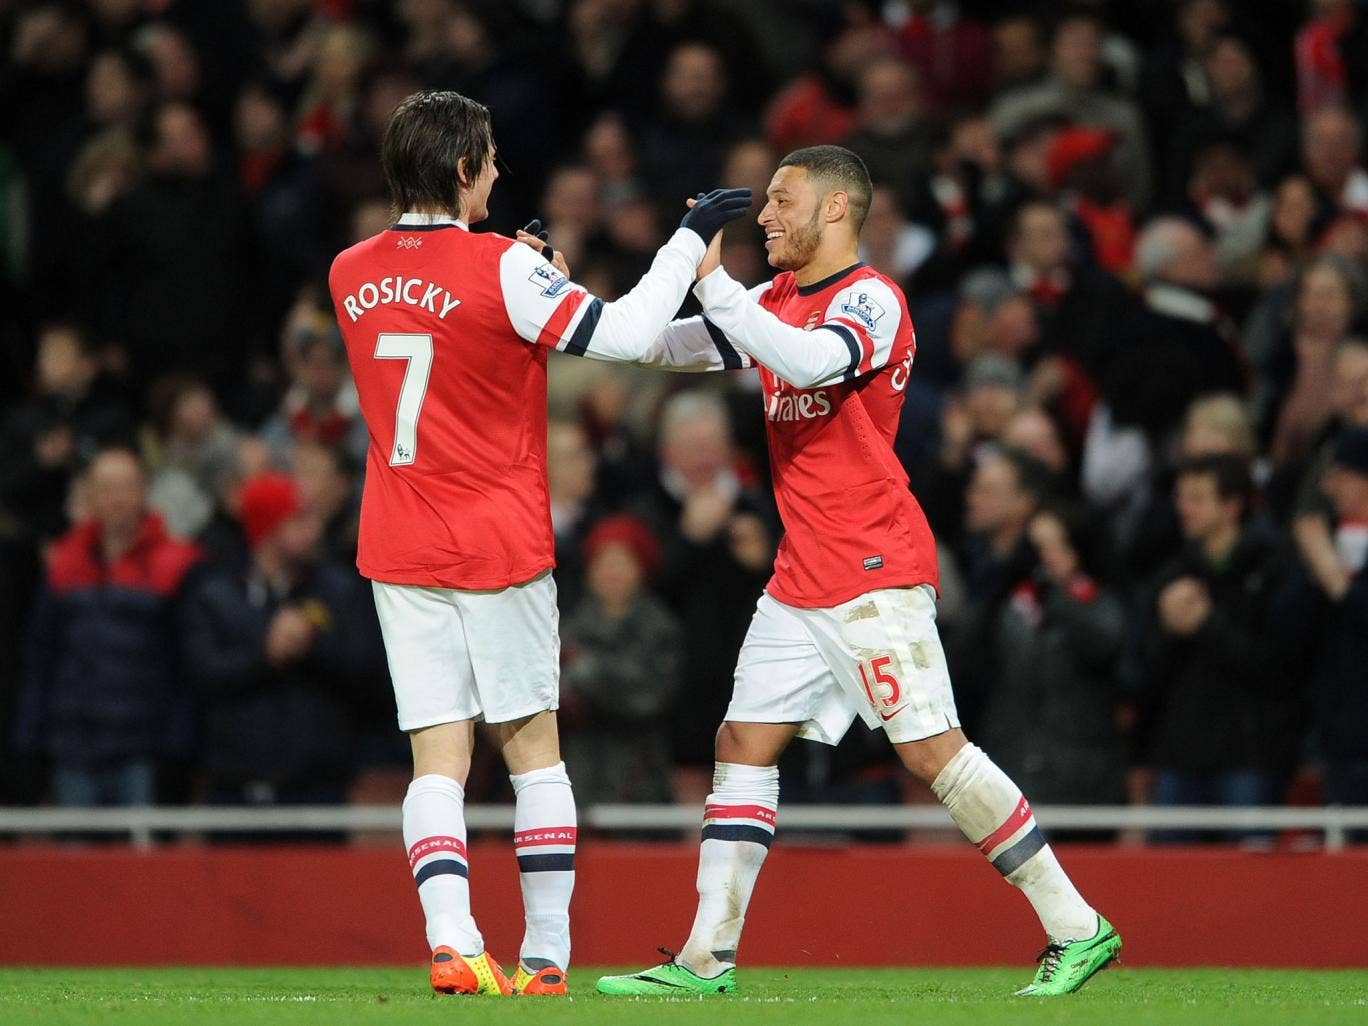 Arsenal manager Arsene Wenger looks set to decide between Tomas Rosicky and Alex Oxlade-Chamberlain ahead of their clash against Bayern Munich